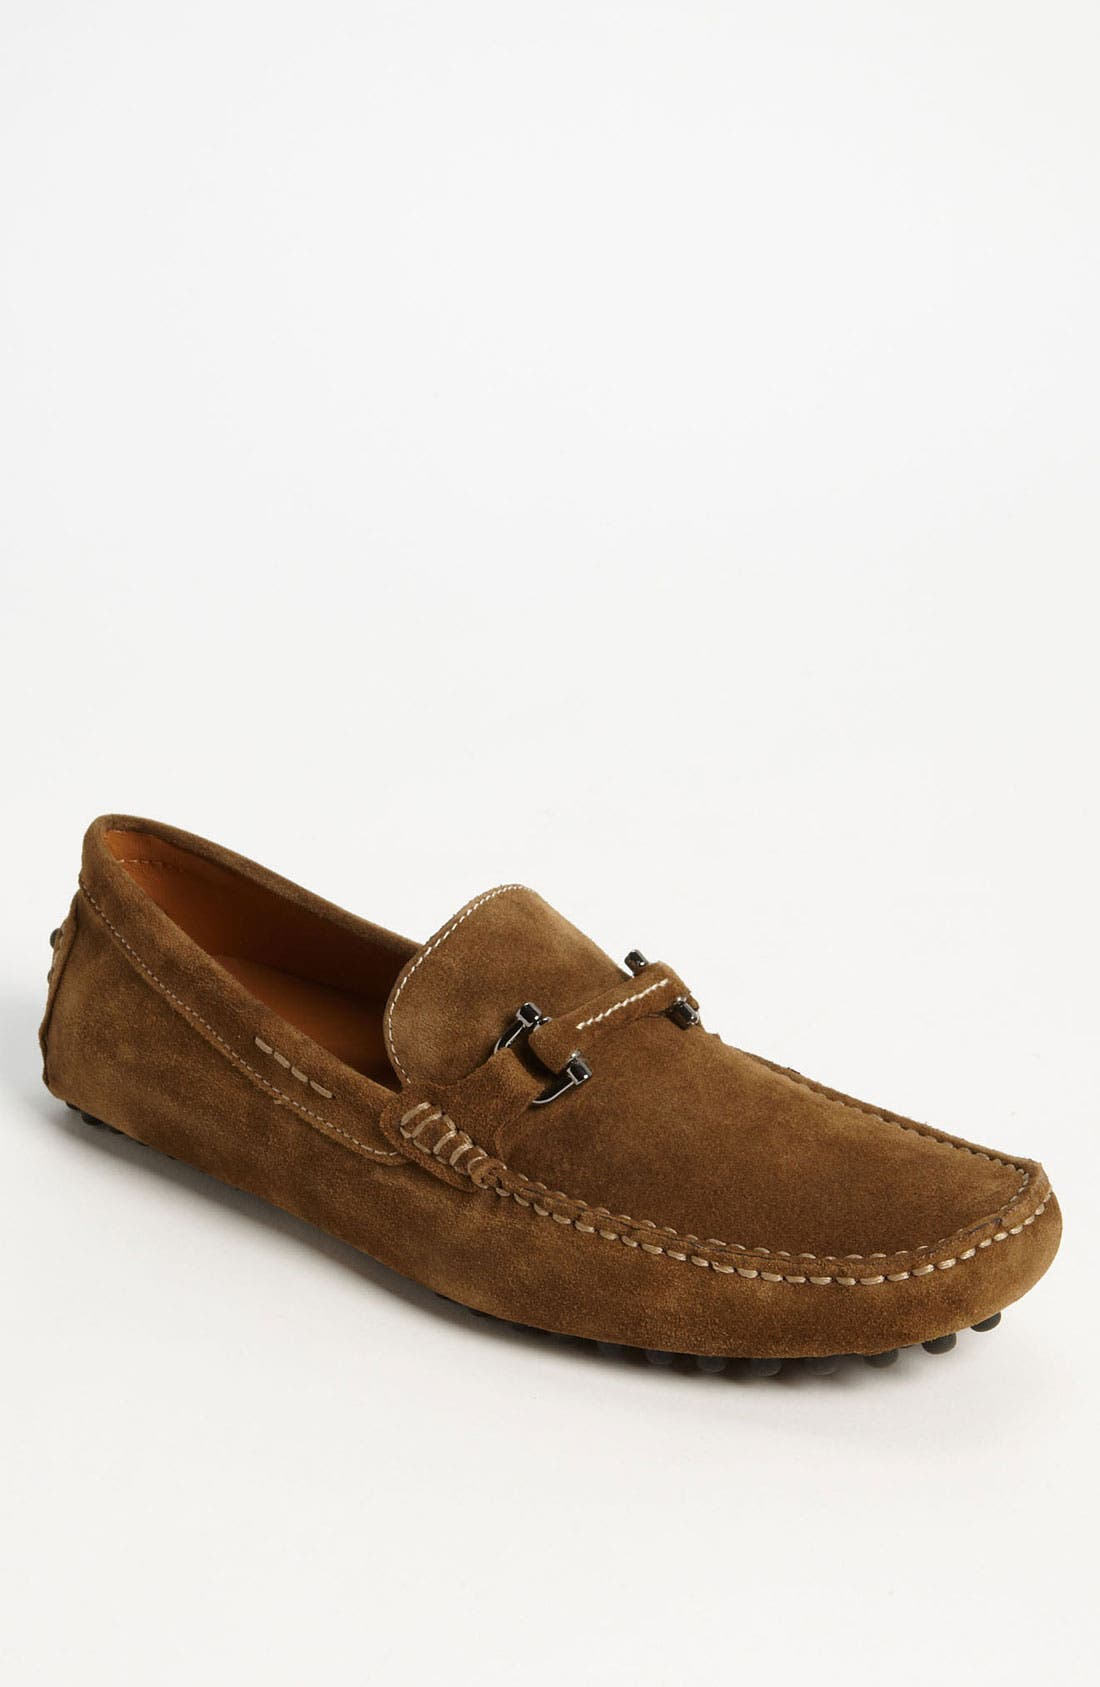 Alternate Image 1 Selected - G Brown 'Antigua' Driving Shoe